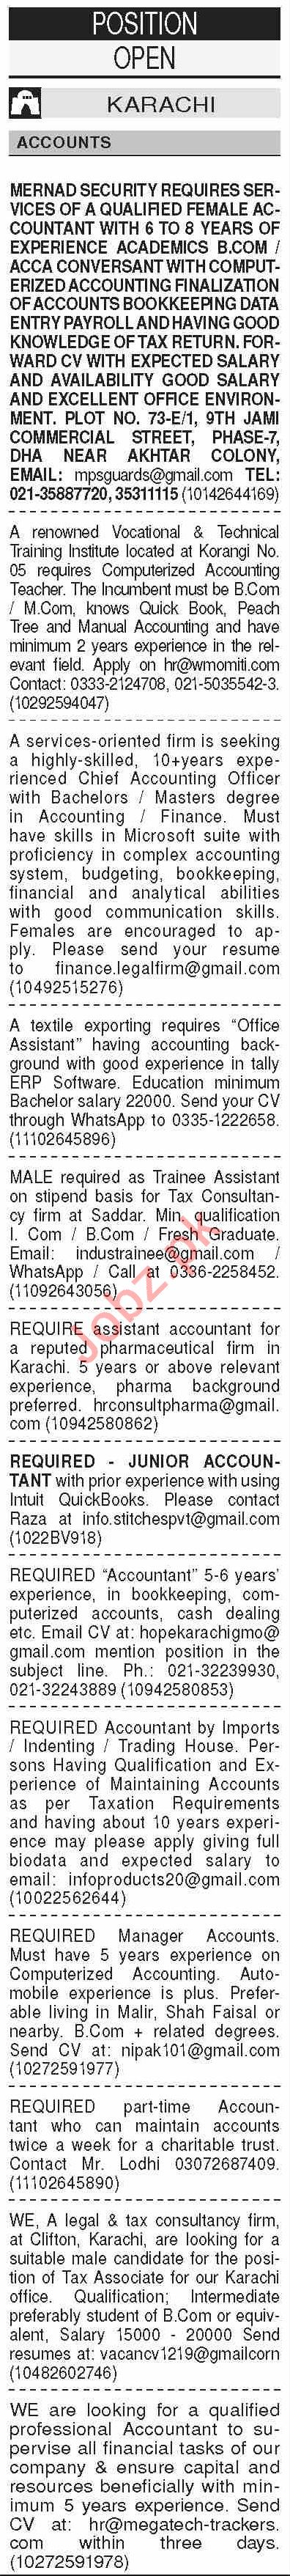 Dawn Sunday Classified Ads 27 Sept 2020 for Accounts Staff